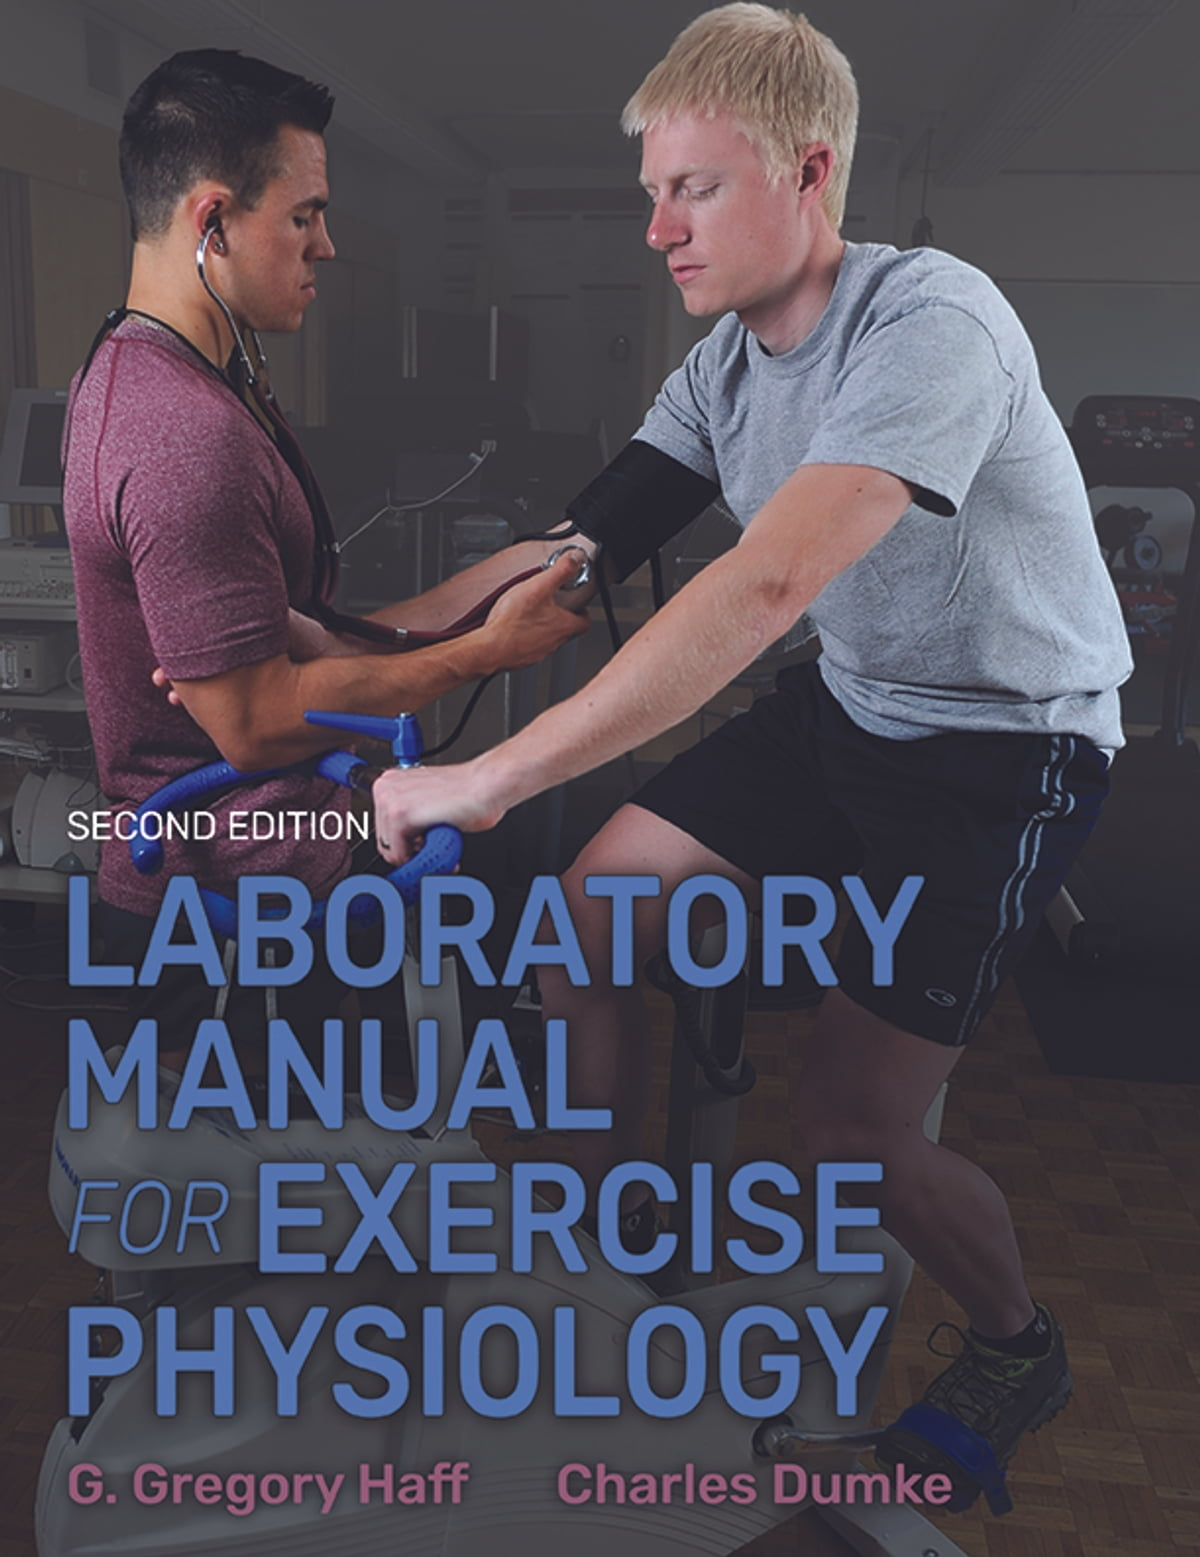 Laboratory Manual for Exercise Physiology, 2E eBook by G. Gregory Haff -  9781492563389 | Rakuten Kobo